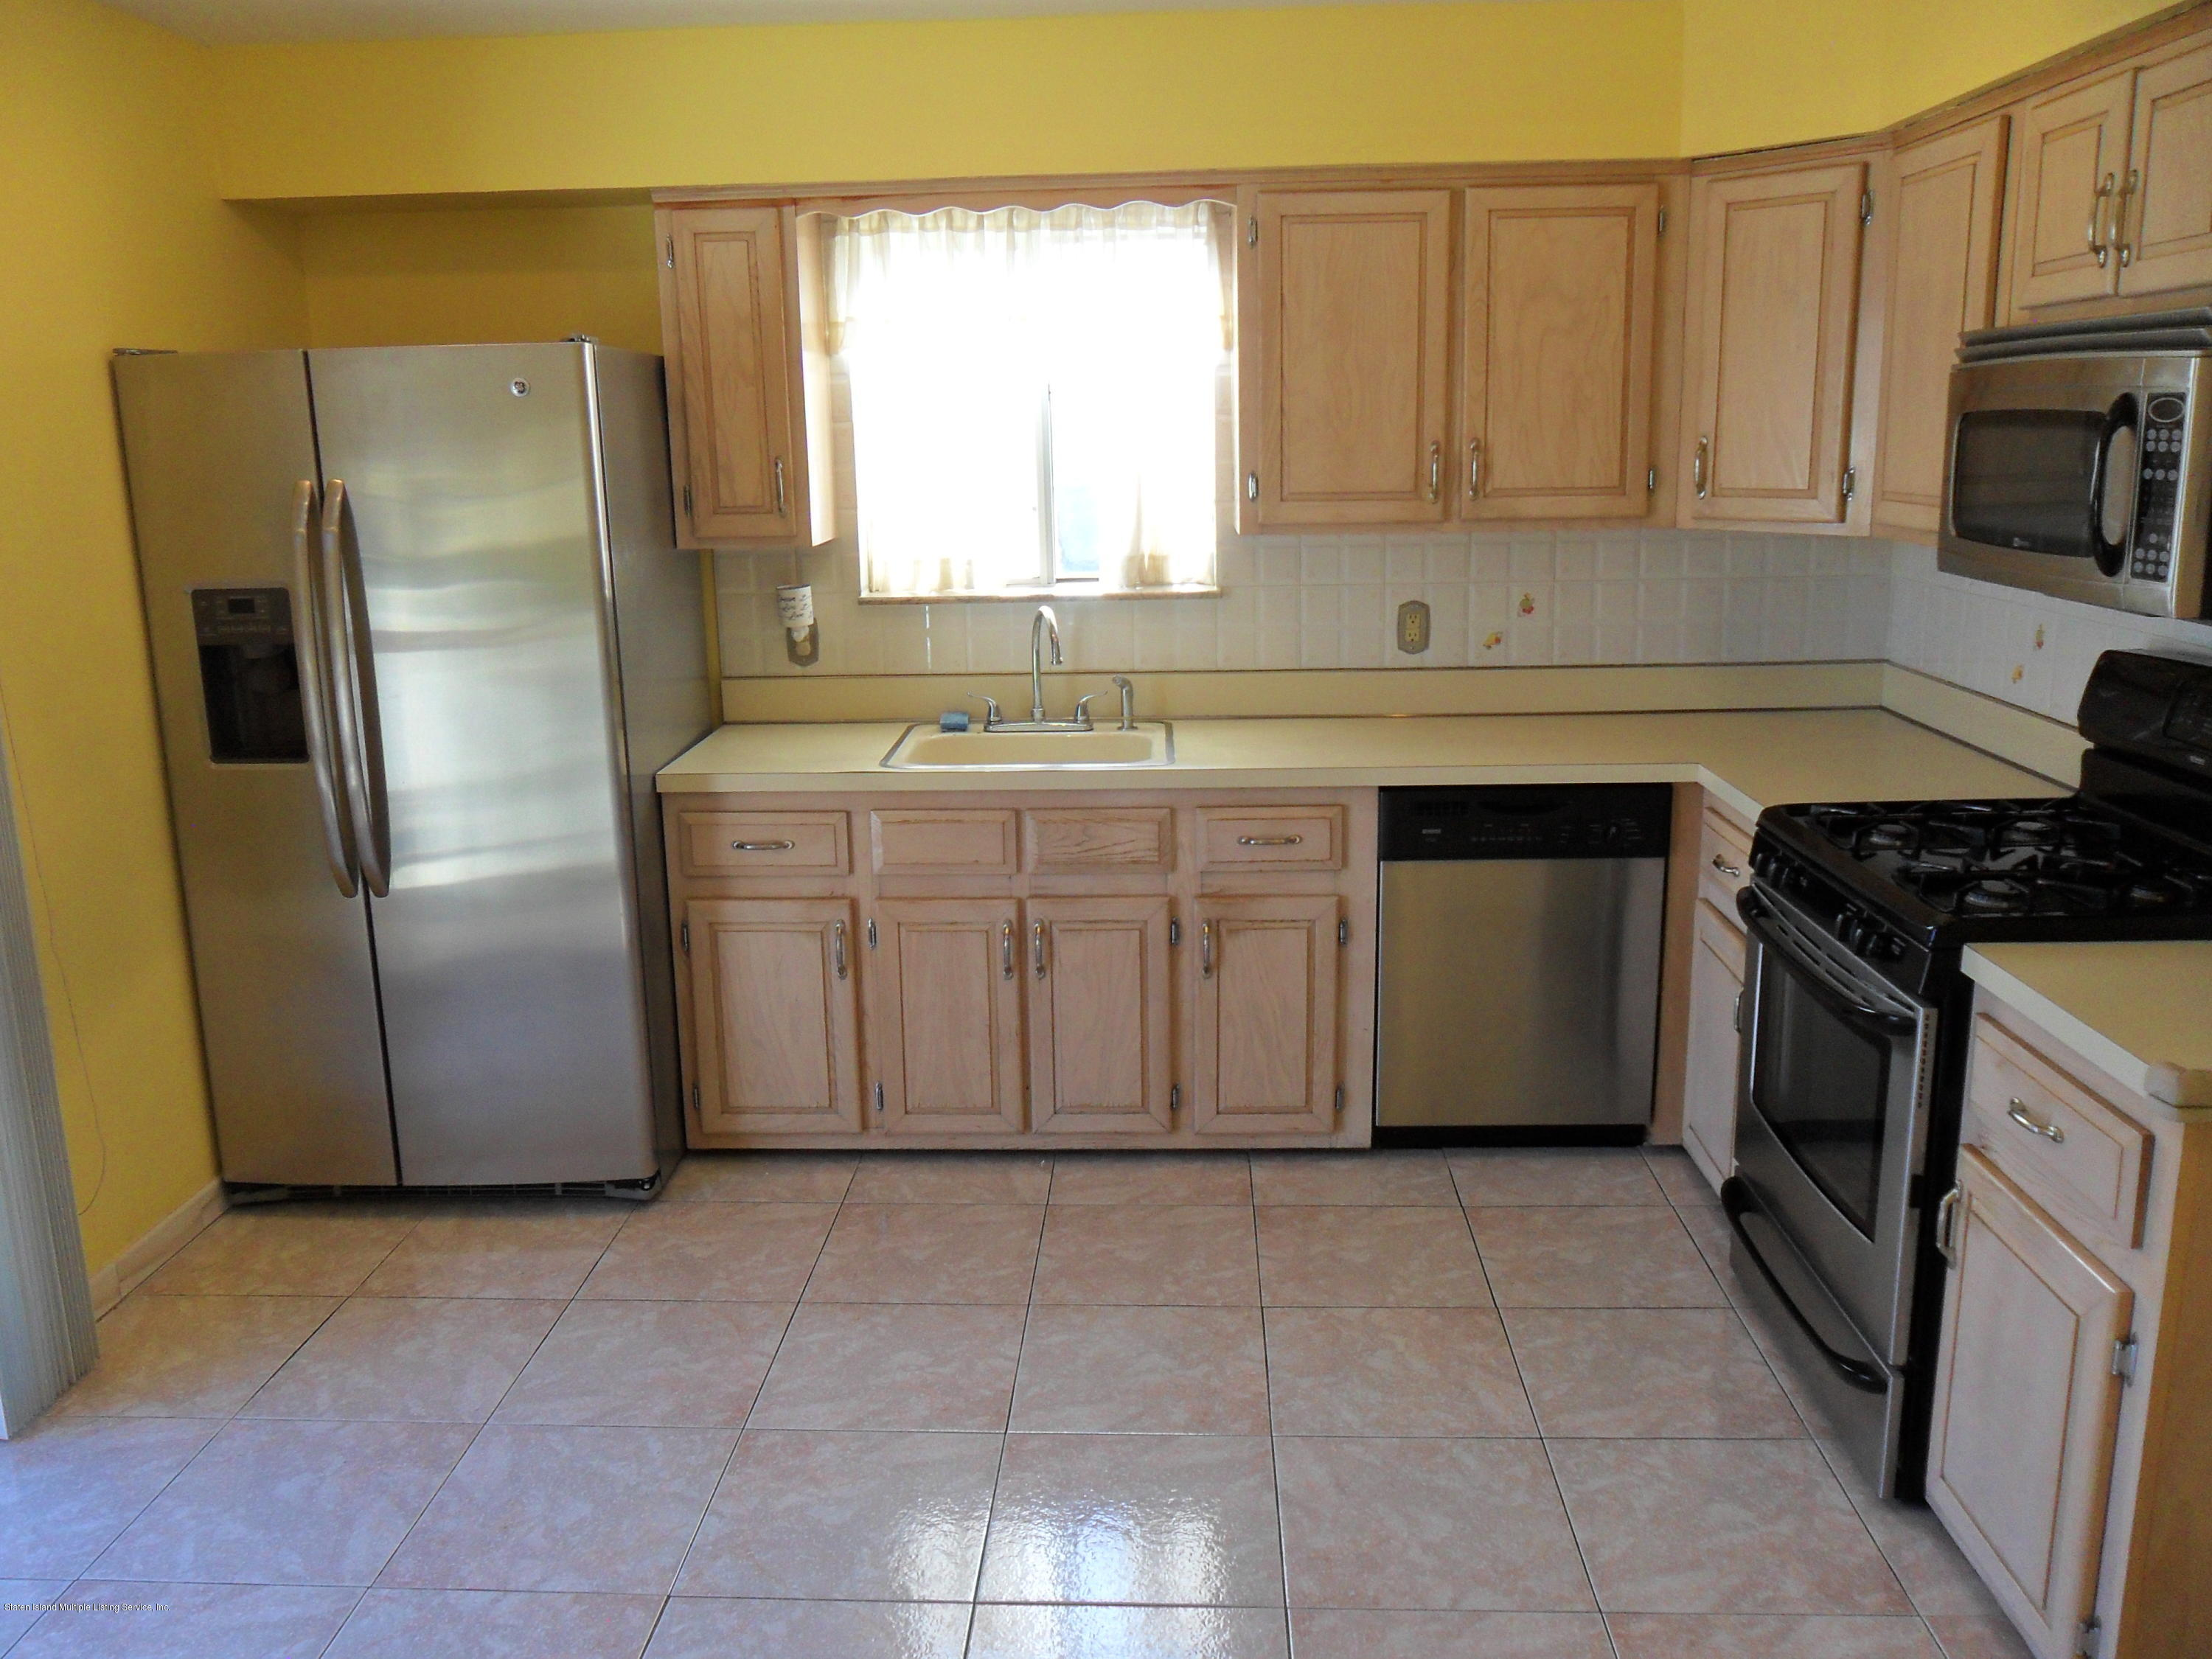 Single Family - Semi-Attached 50 Forest Street  Staten Island, NY 10314, MLS-1127879-14